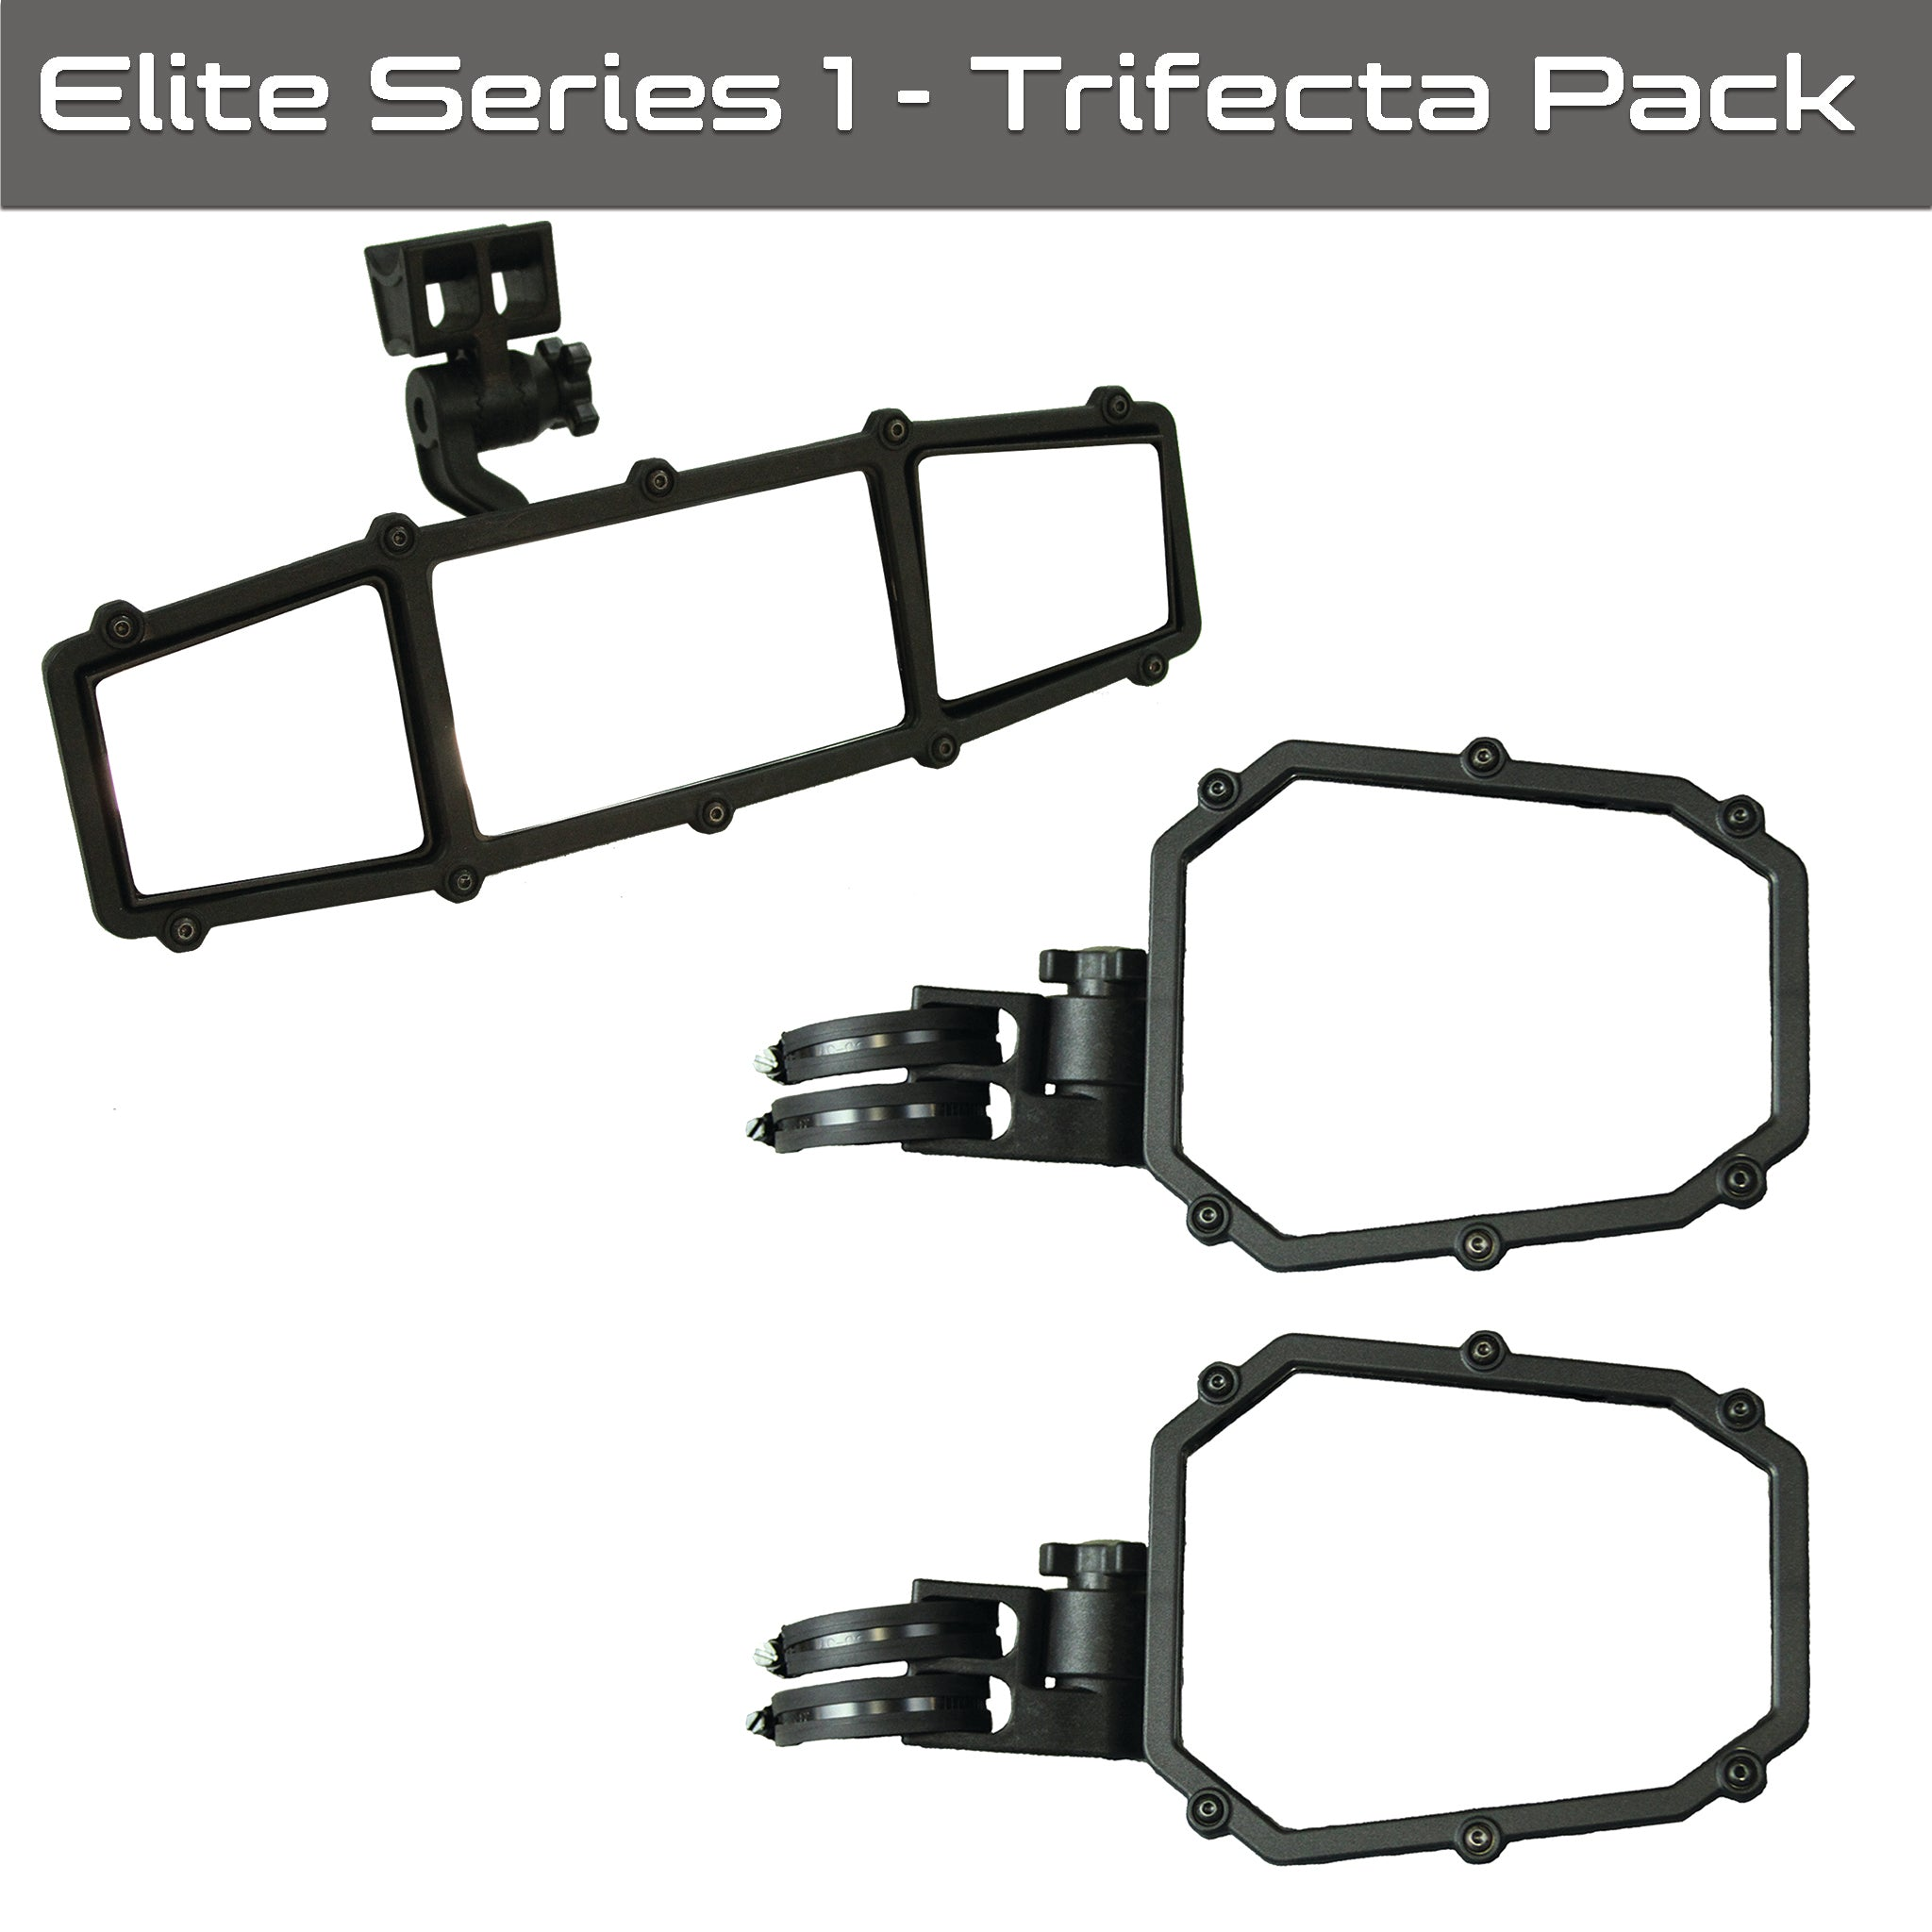 Elite Series 1 UTV Trifecta Pack - (2) Elite Sideview mirrors, (1) Elite rearview mirror